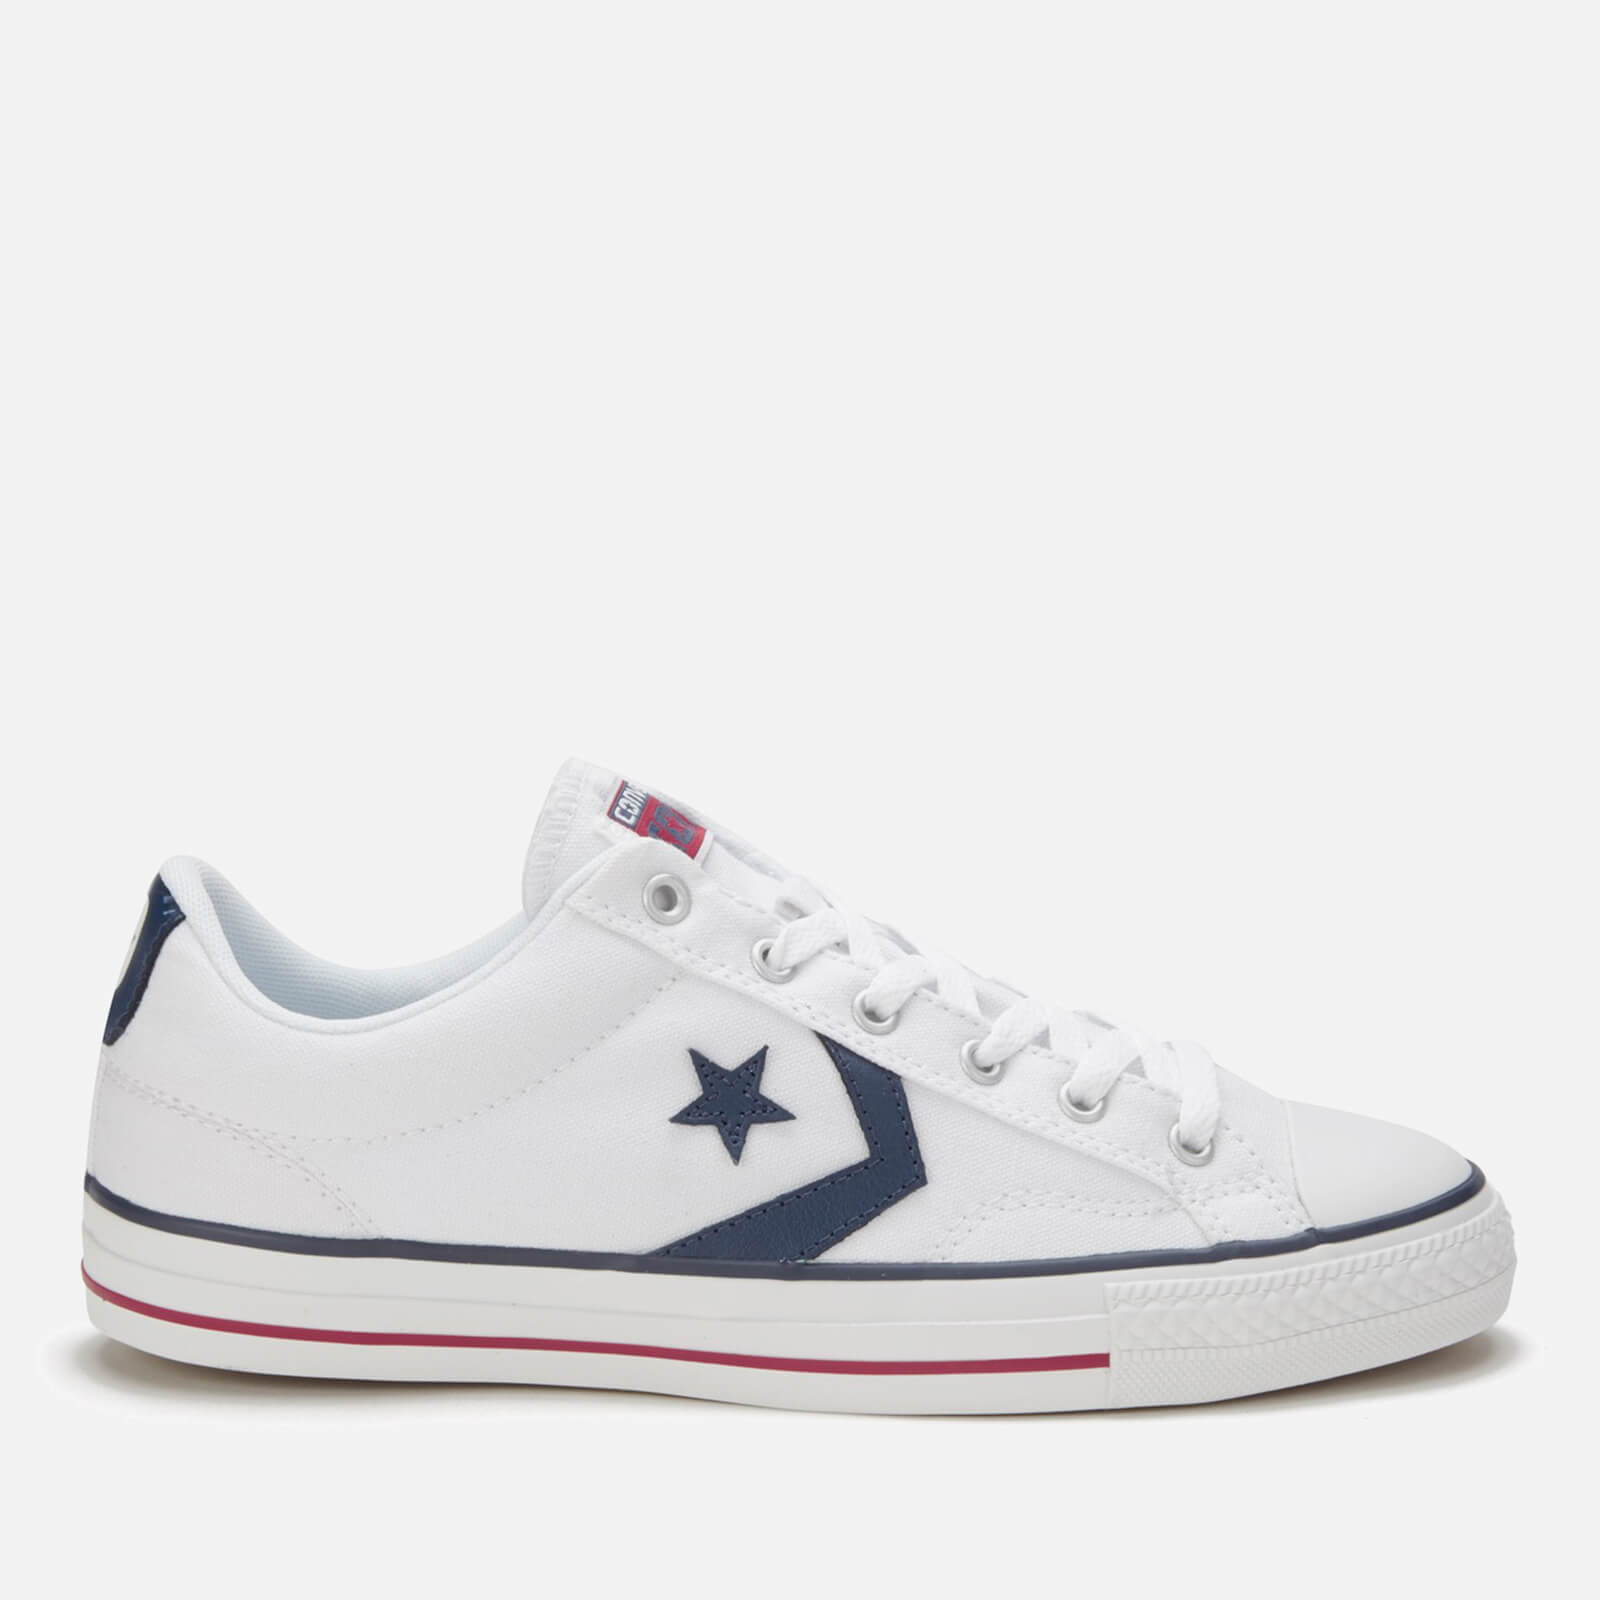 Converse Men's Cons Star Player Canvas Trainers WhiteWhiteNavy